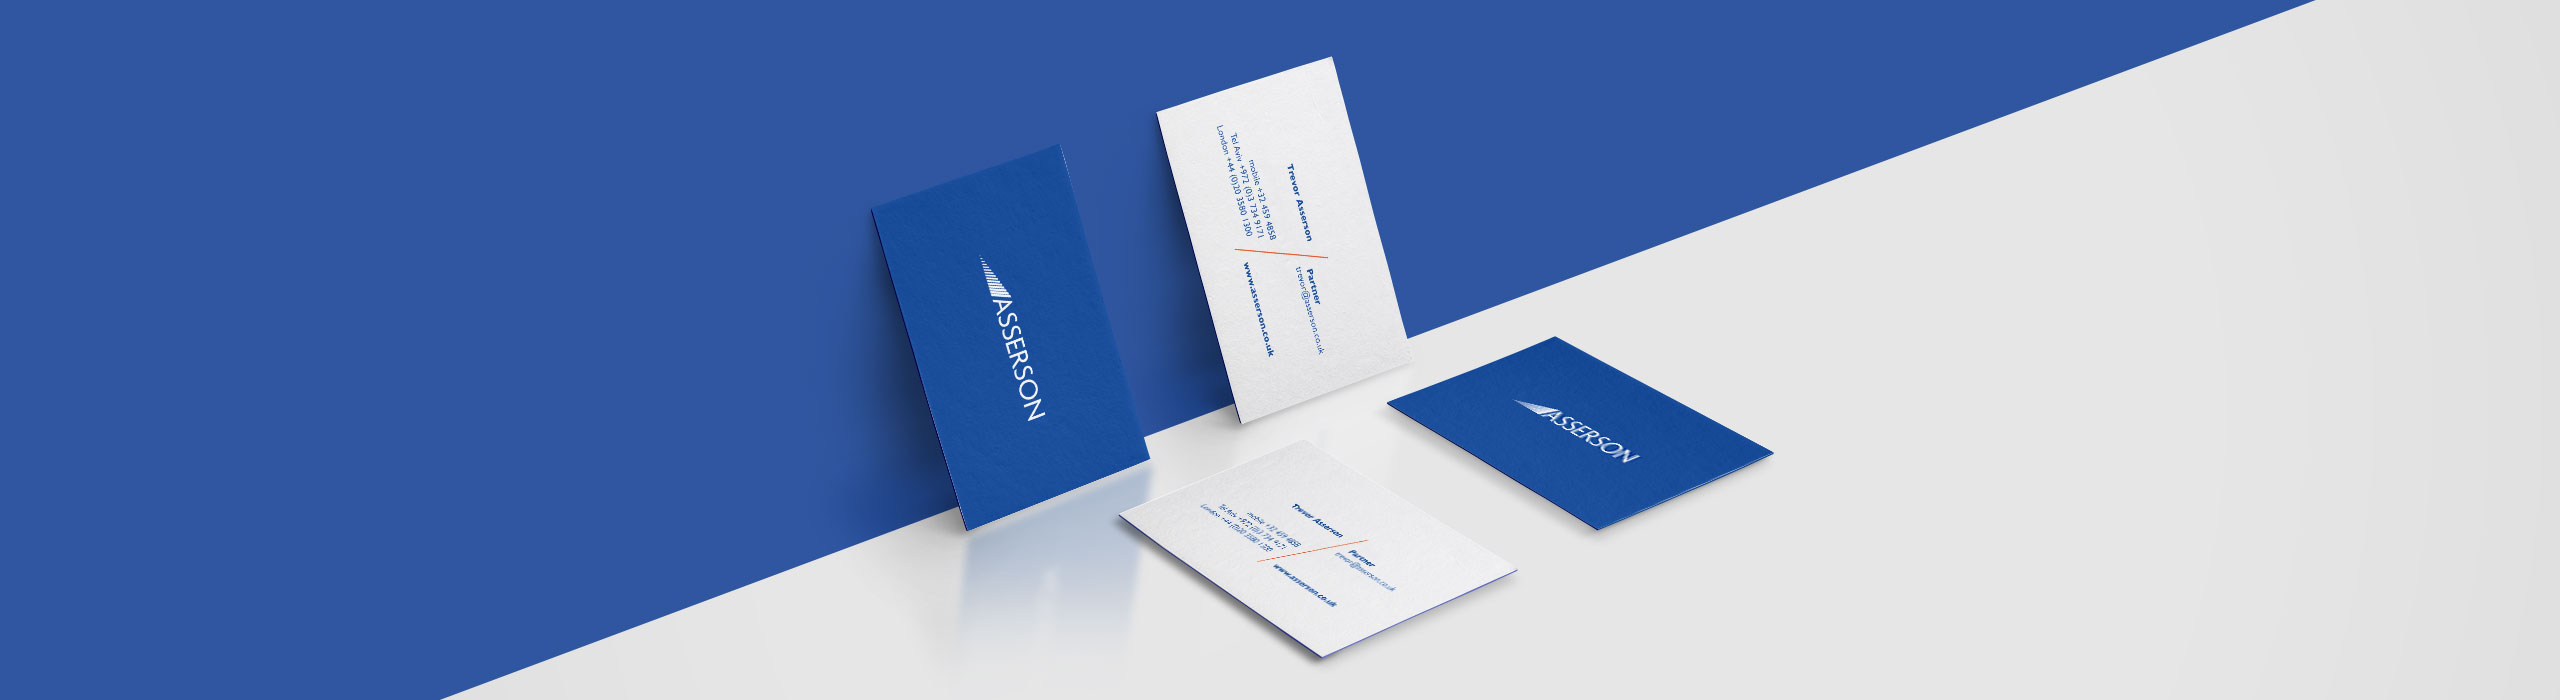 Asserson - natie-asserson-business-cards - Natie Branding Agency